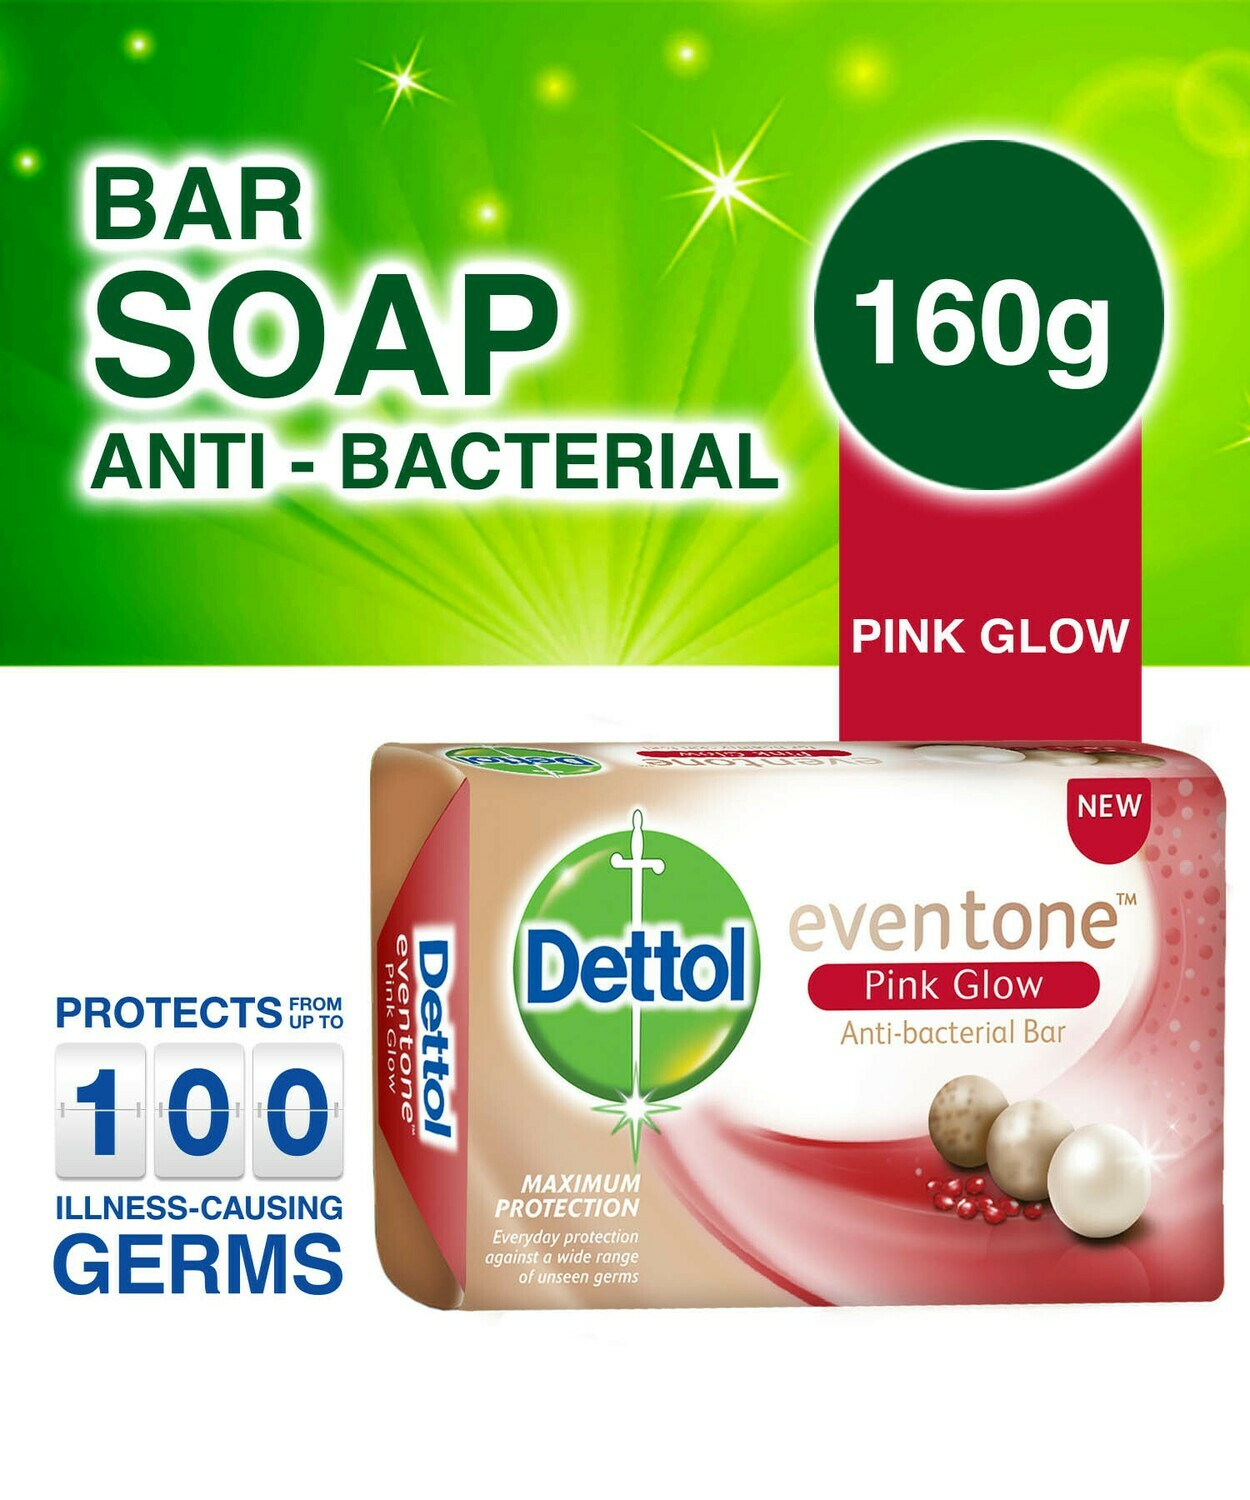 DETTOL EVENTONE PINK GLOW ANTI BACTERIAL SOAP 160G